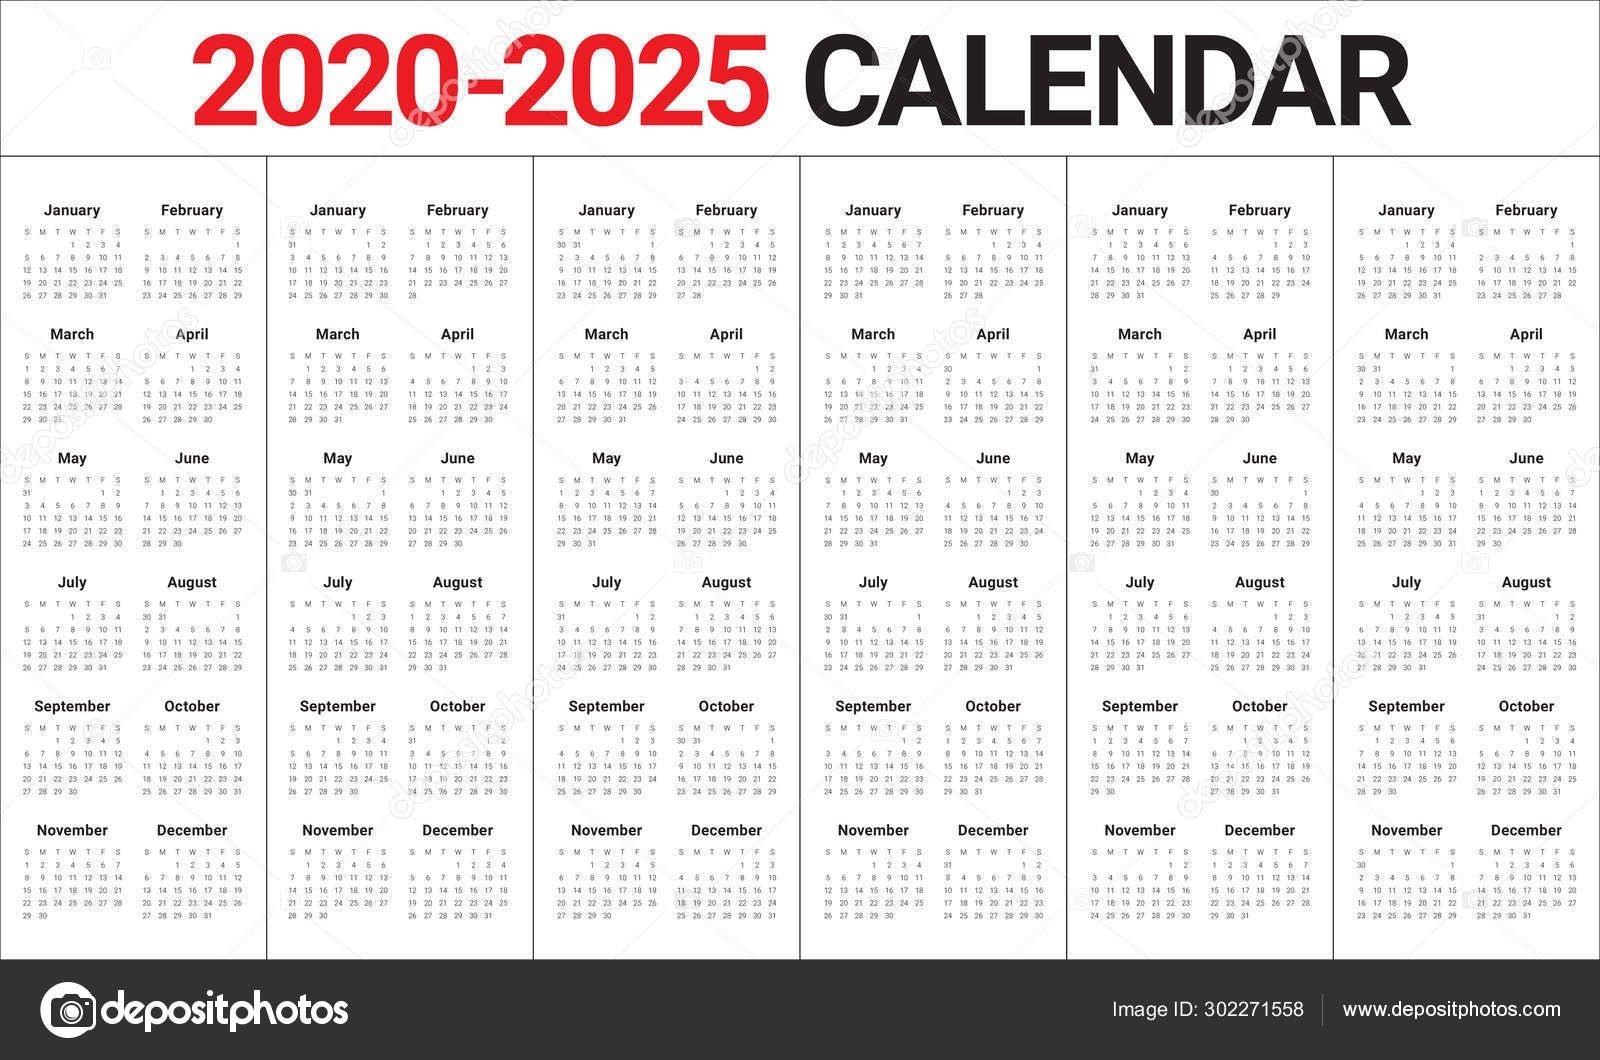 Year 2020 2021 2022 2023 2024 2025 Calendar Vector Design Templa 302271558